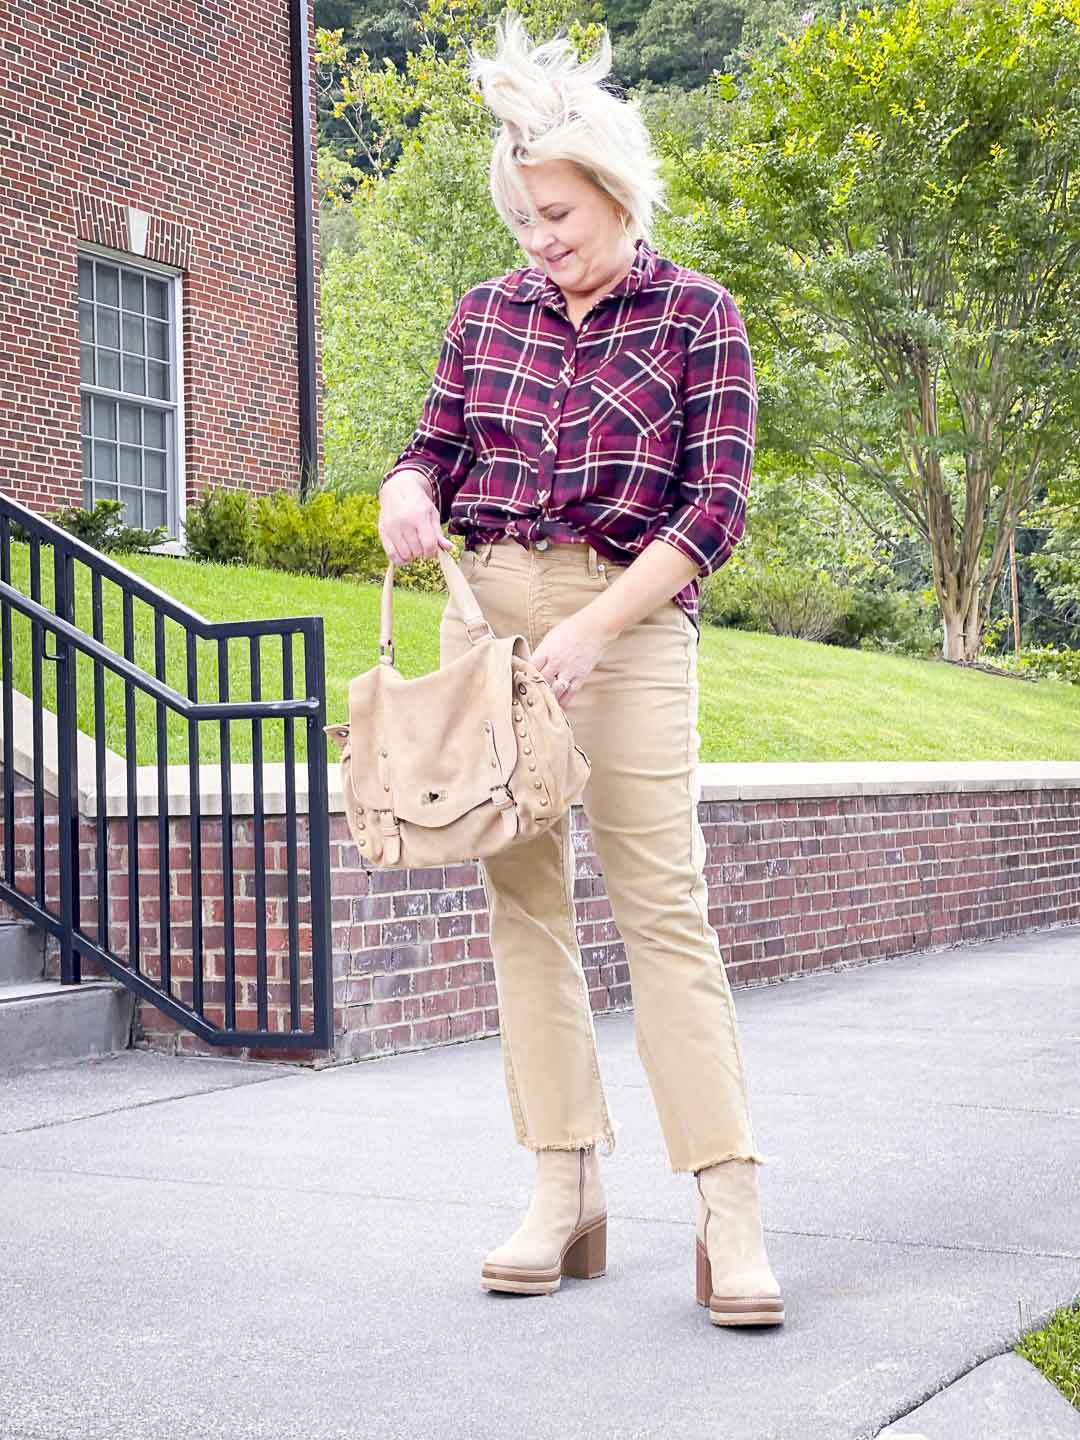 Over 40 Fashion Blogger, Tania Stephens's hair is being blown by the wind while wearing a plaid flannel shirt with crop jeans to sho how to get the most out of your wardrobe